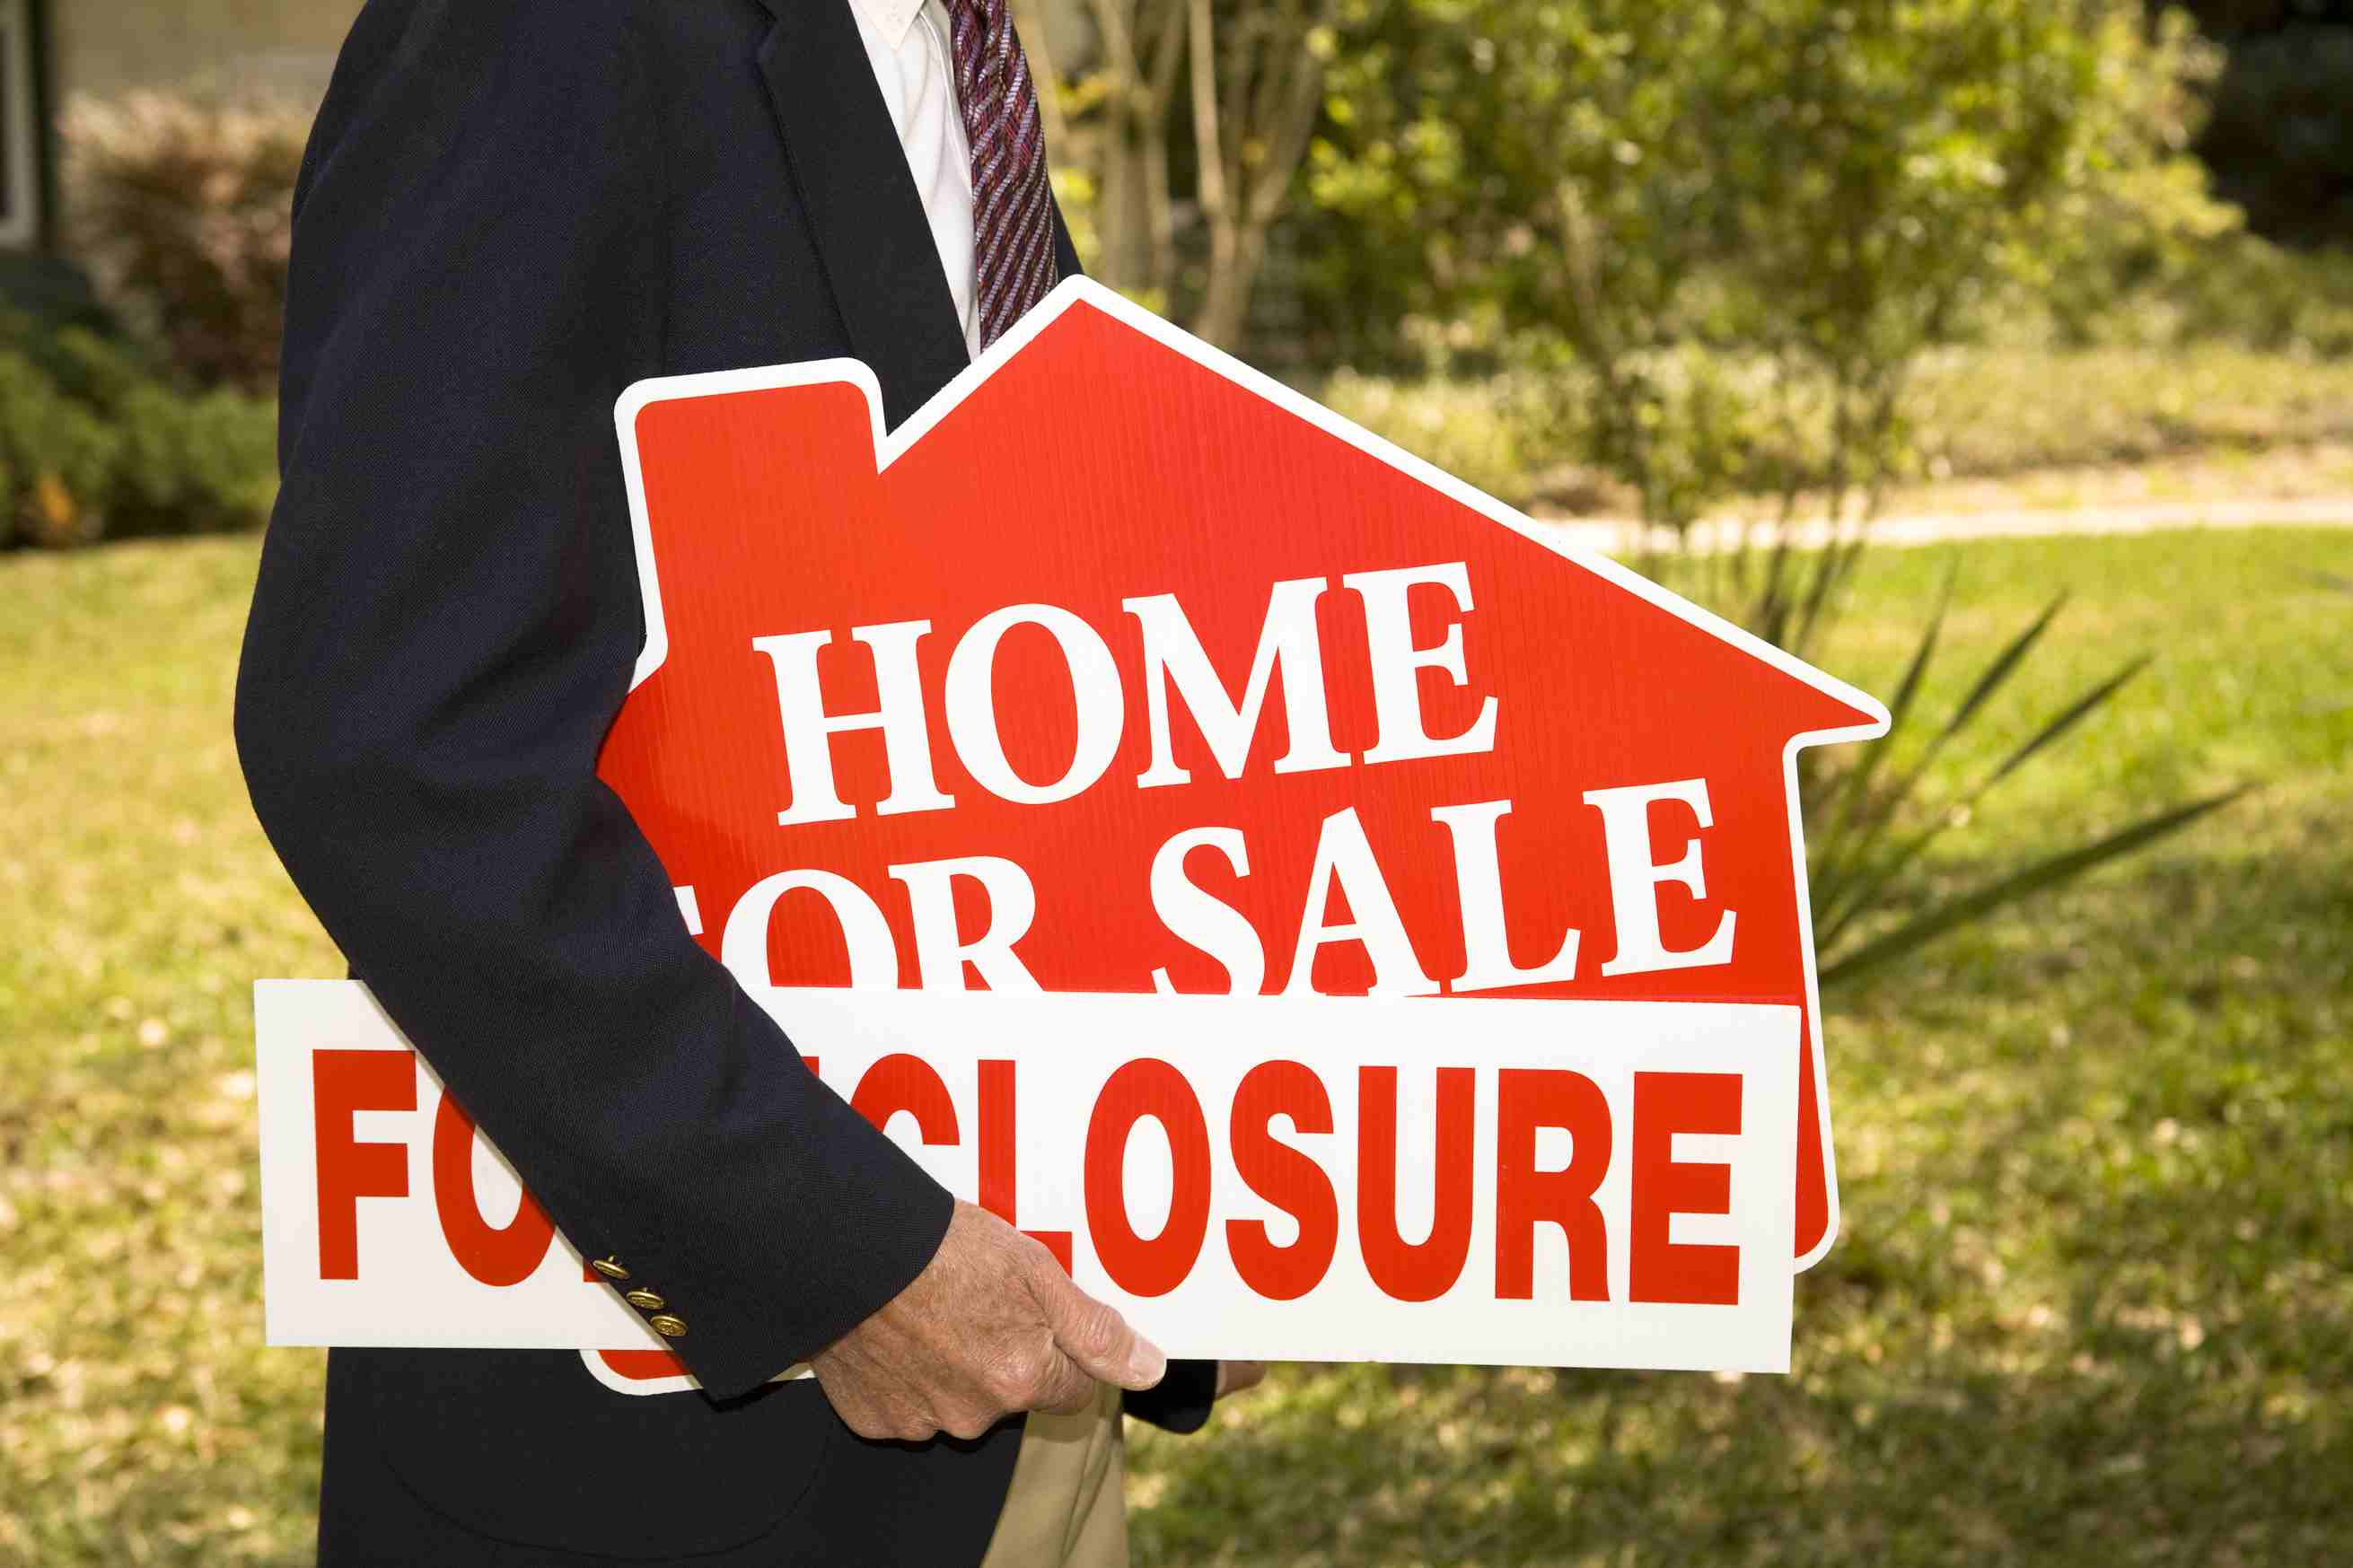 Foreclosure and Home for Sale sign